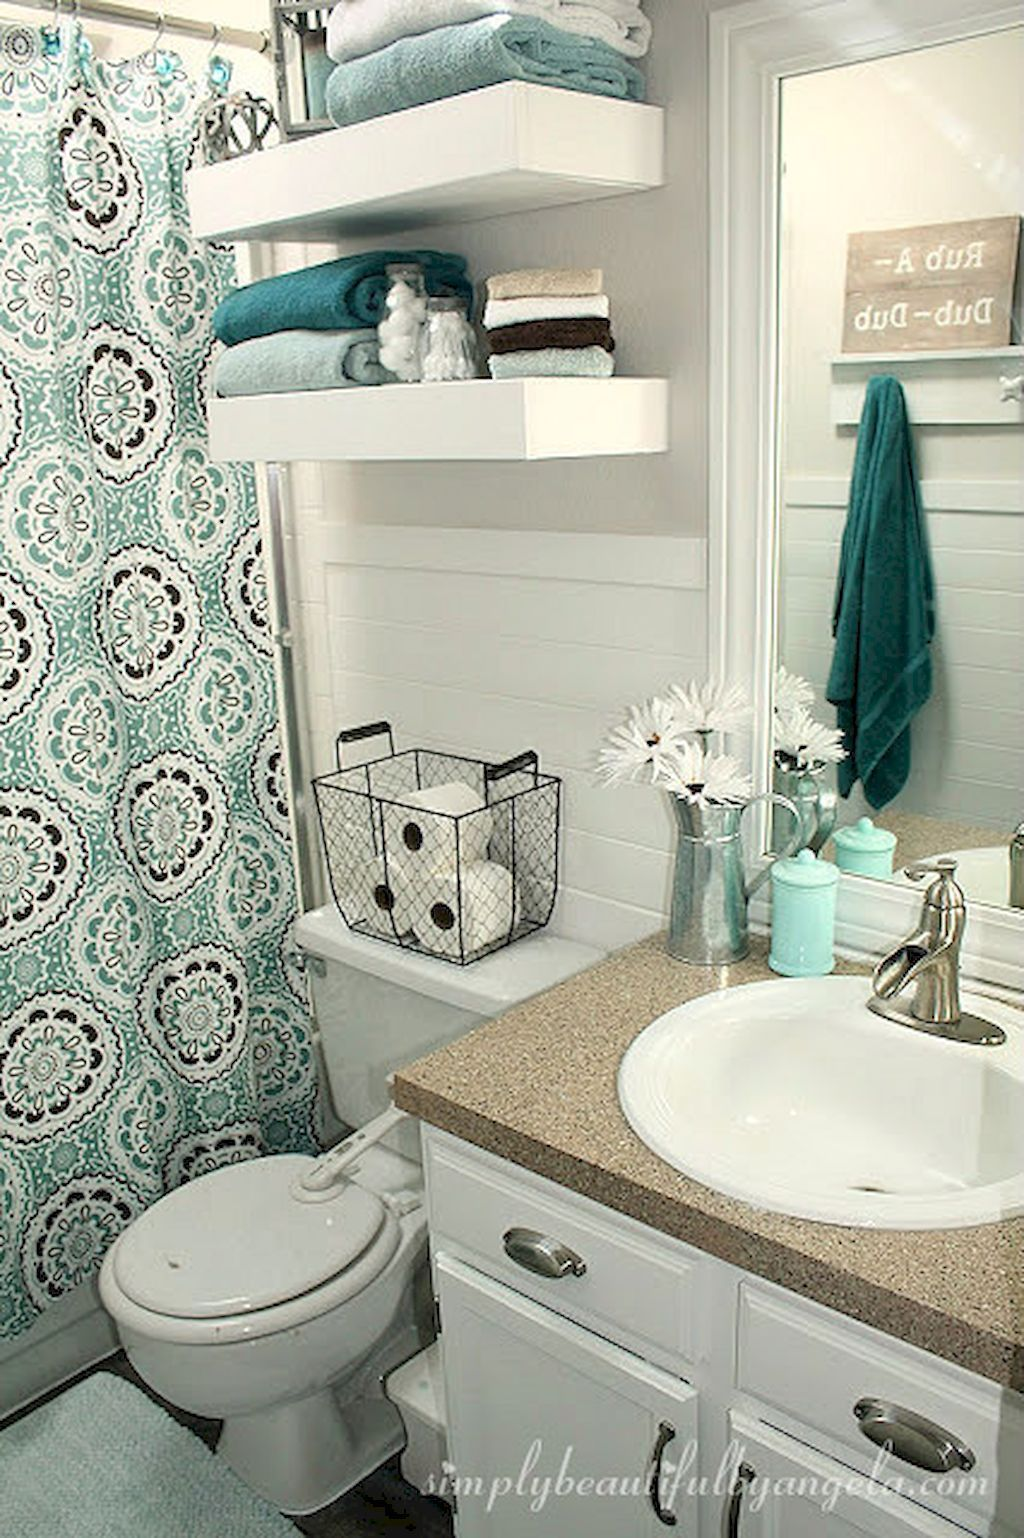 Cool Small Master Bathroom Remodel Ideas On A Budget 69